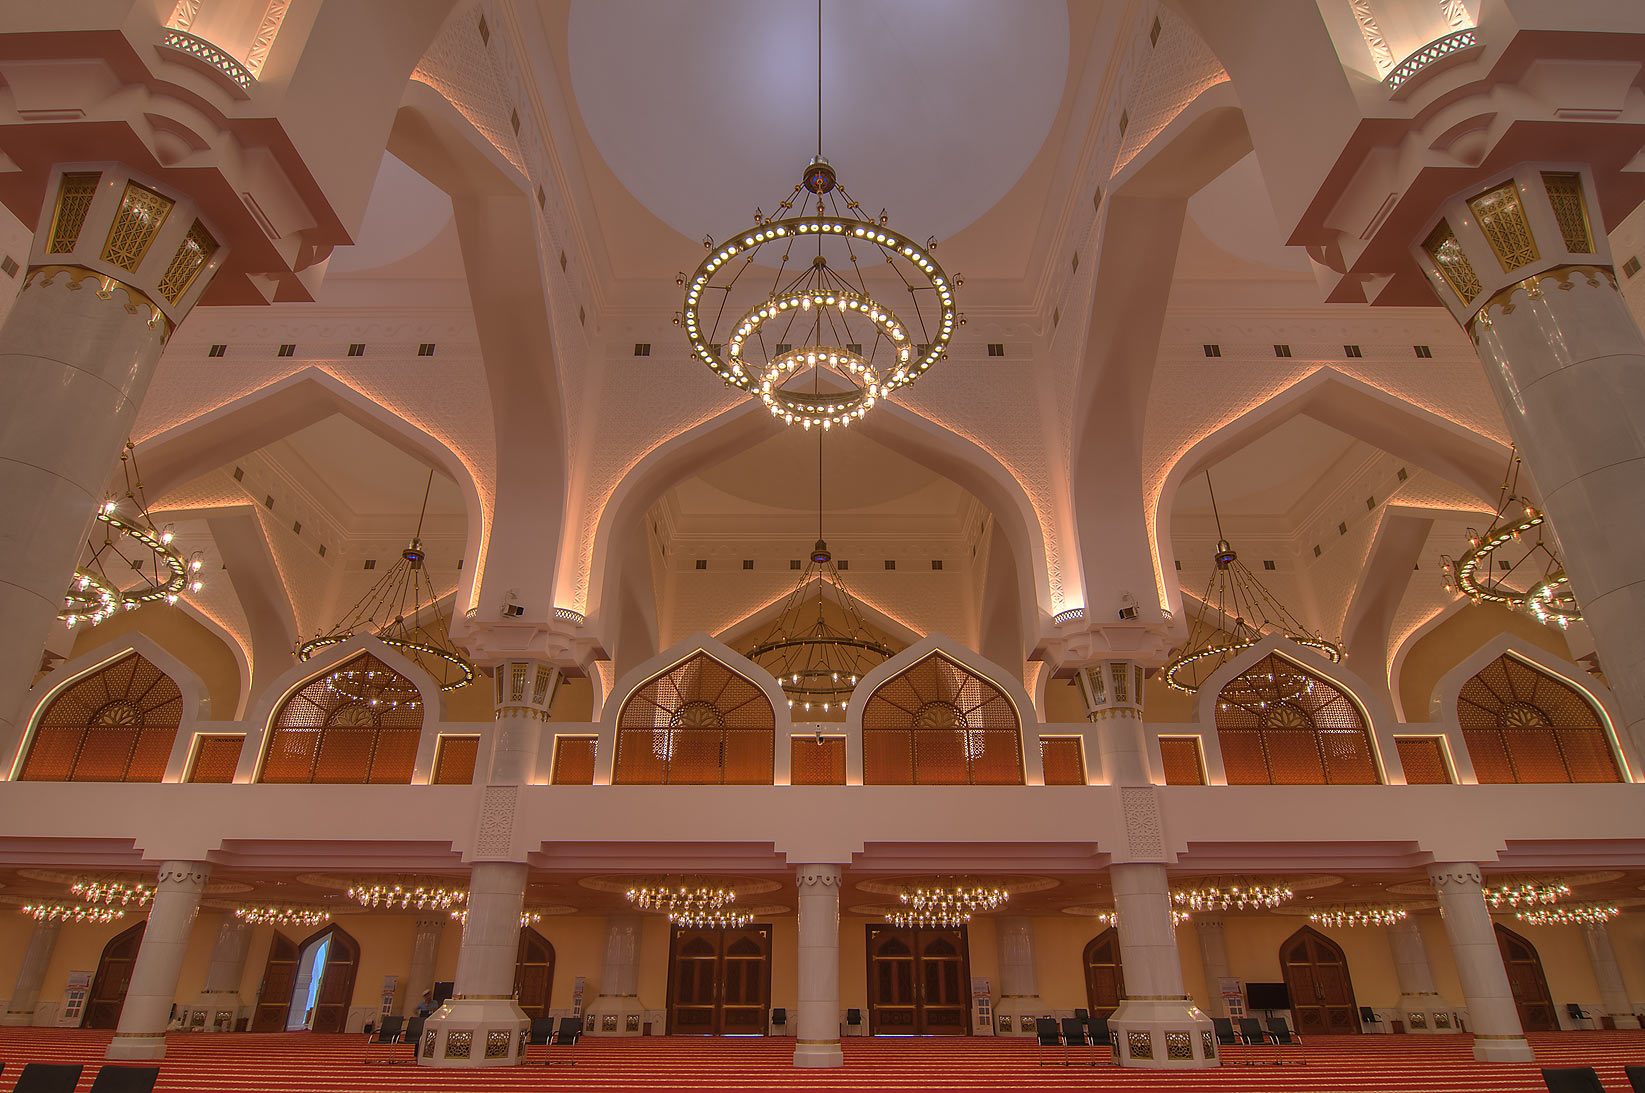 Domed prayer hall (musallah) in State Mosque...Ibn Abdul Wahhab Mosque). Doha, Qatar